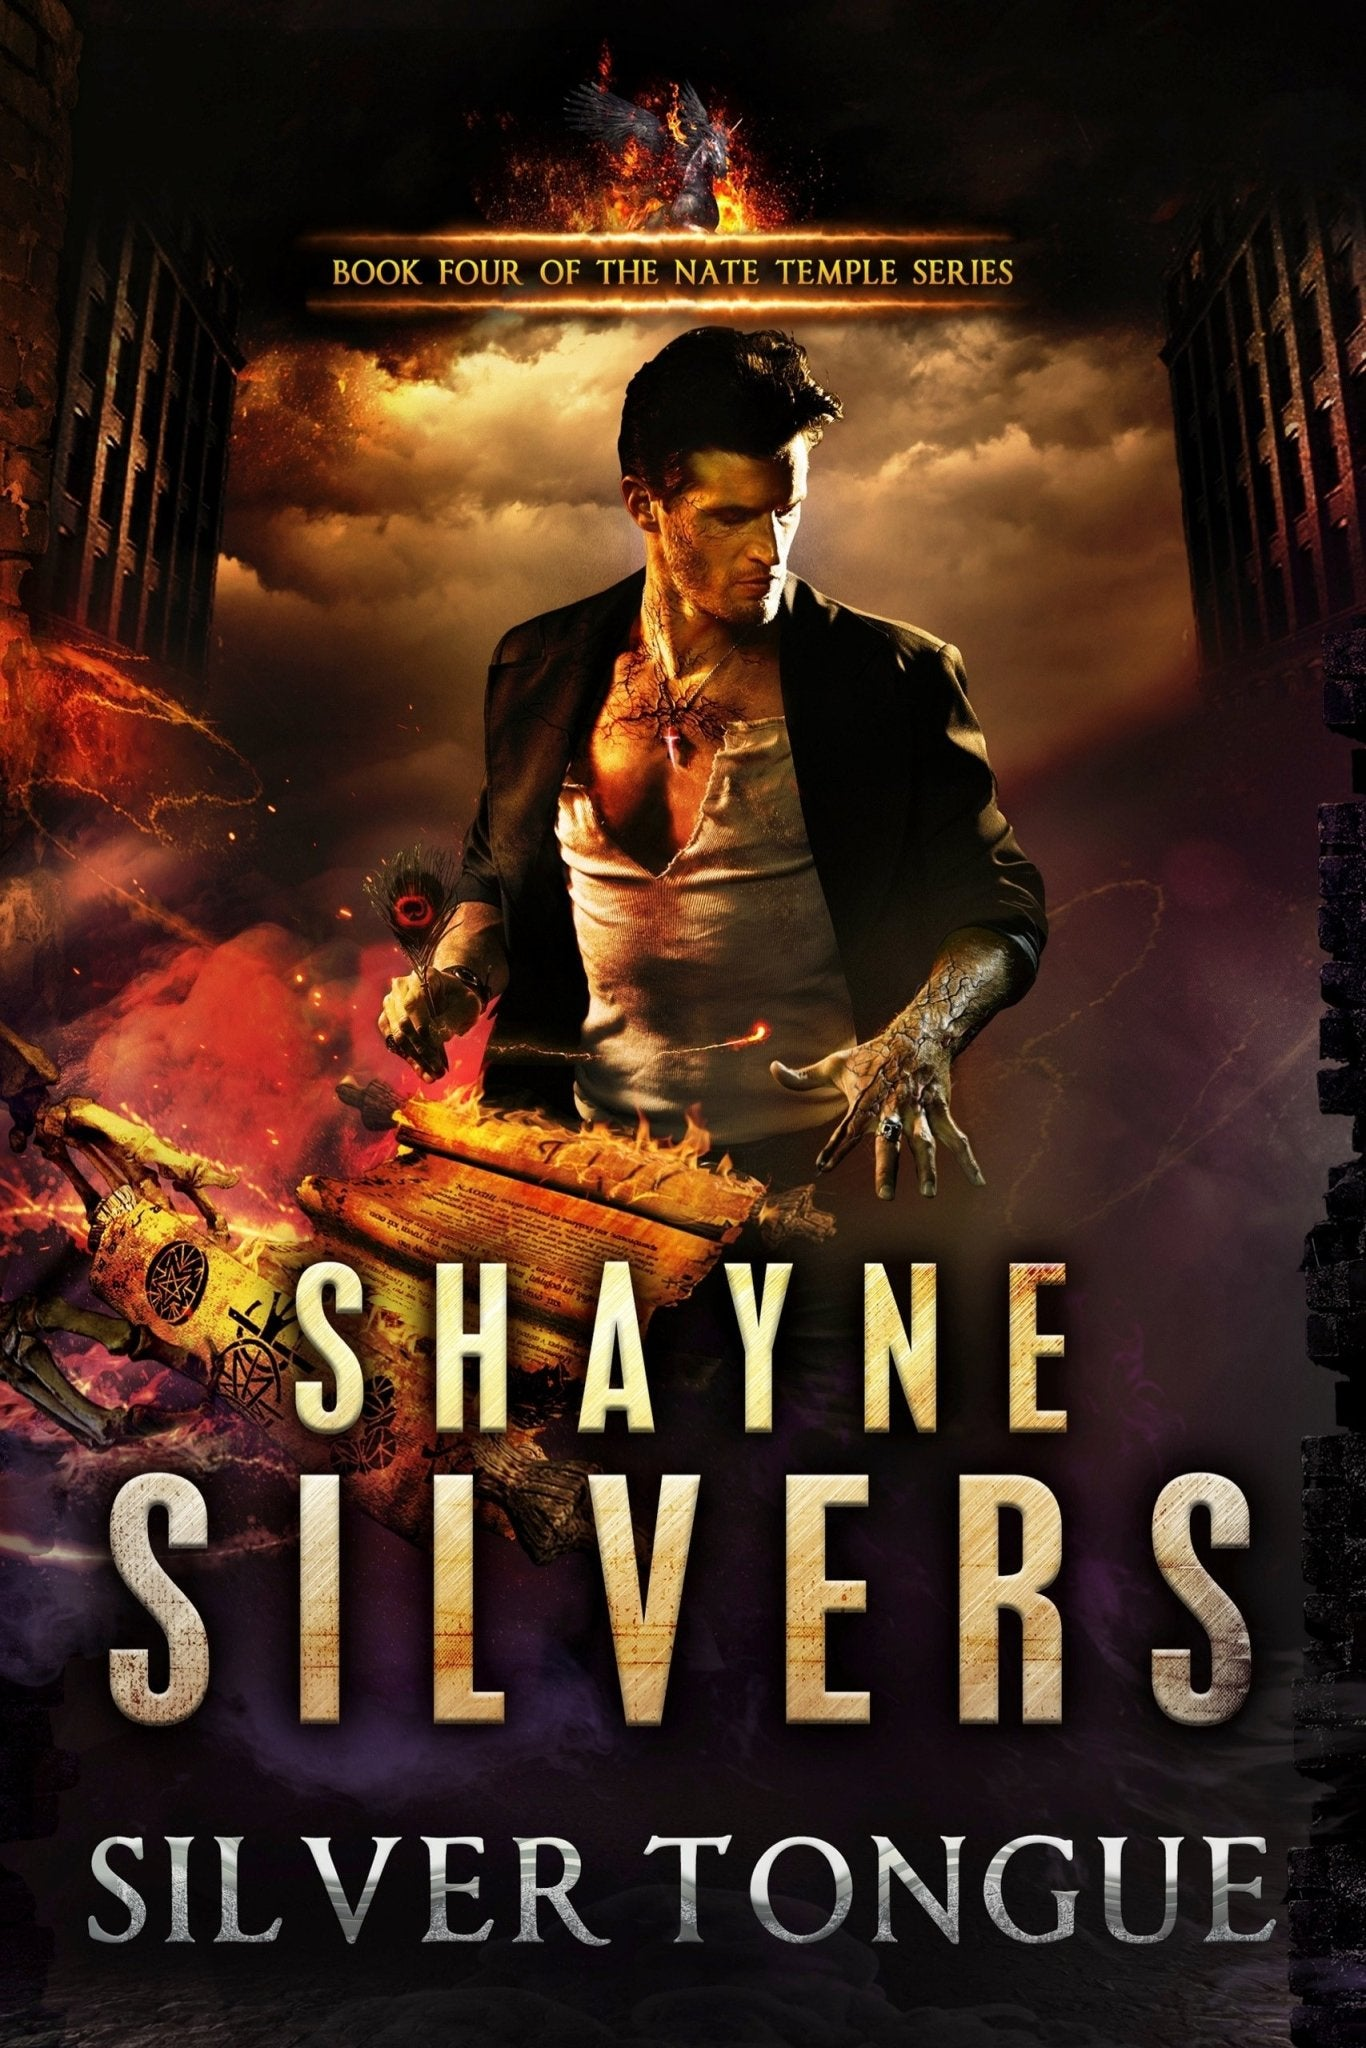 Silver Tongue: A Nate Temple Series Book 4 (Signed Paperback) - Temple Verse Gear